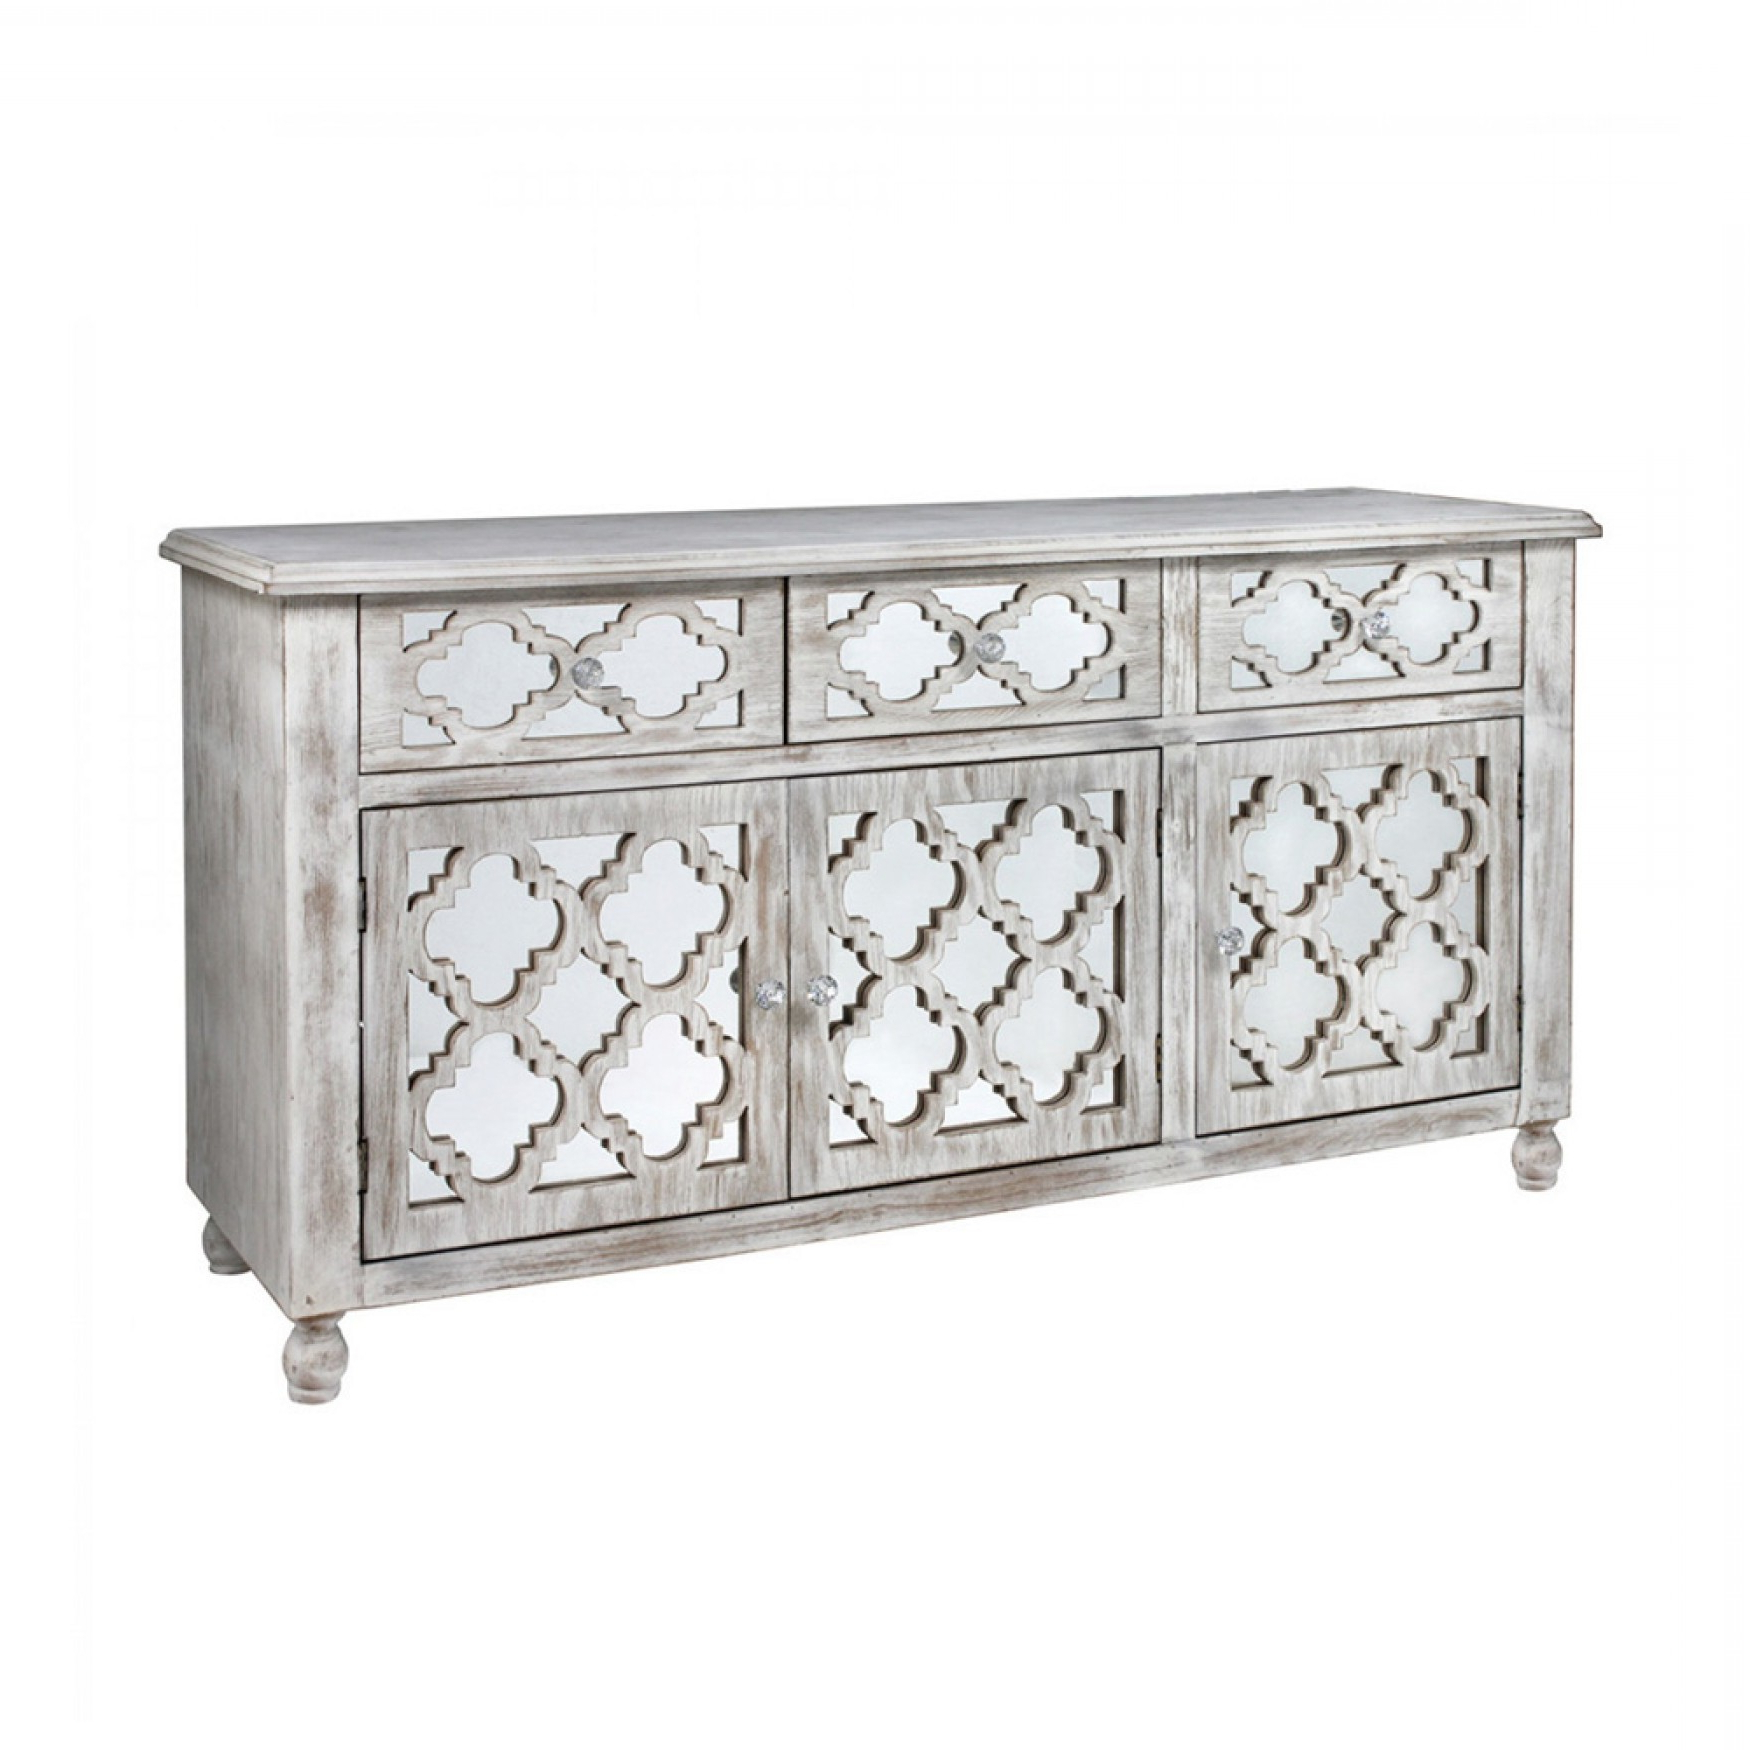 White Wash 3 Door 3 Drawer Sideboards Pertaining To Well Known Hampton Beach 3 Door 3 Drawer Cabinet Washed Ash And Mirror (View 17 of 20)